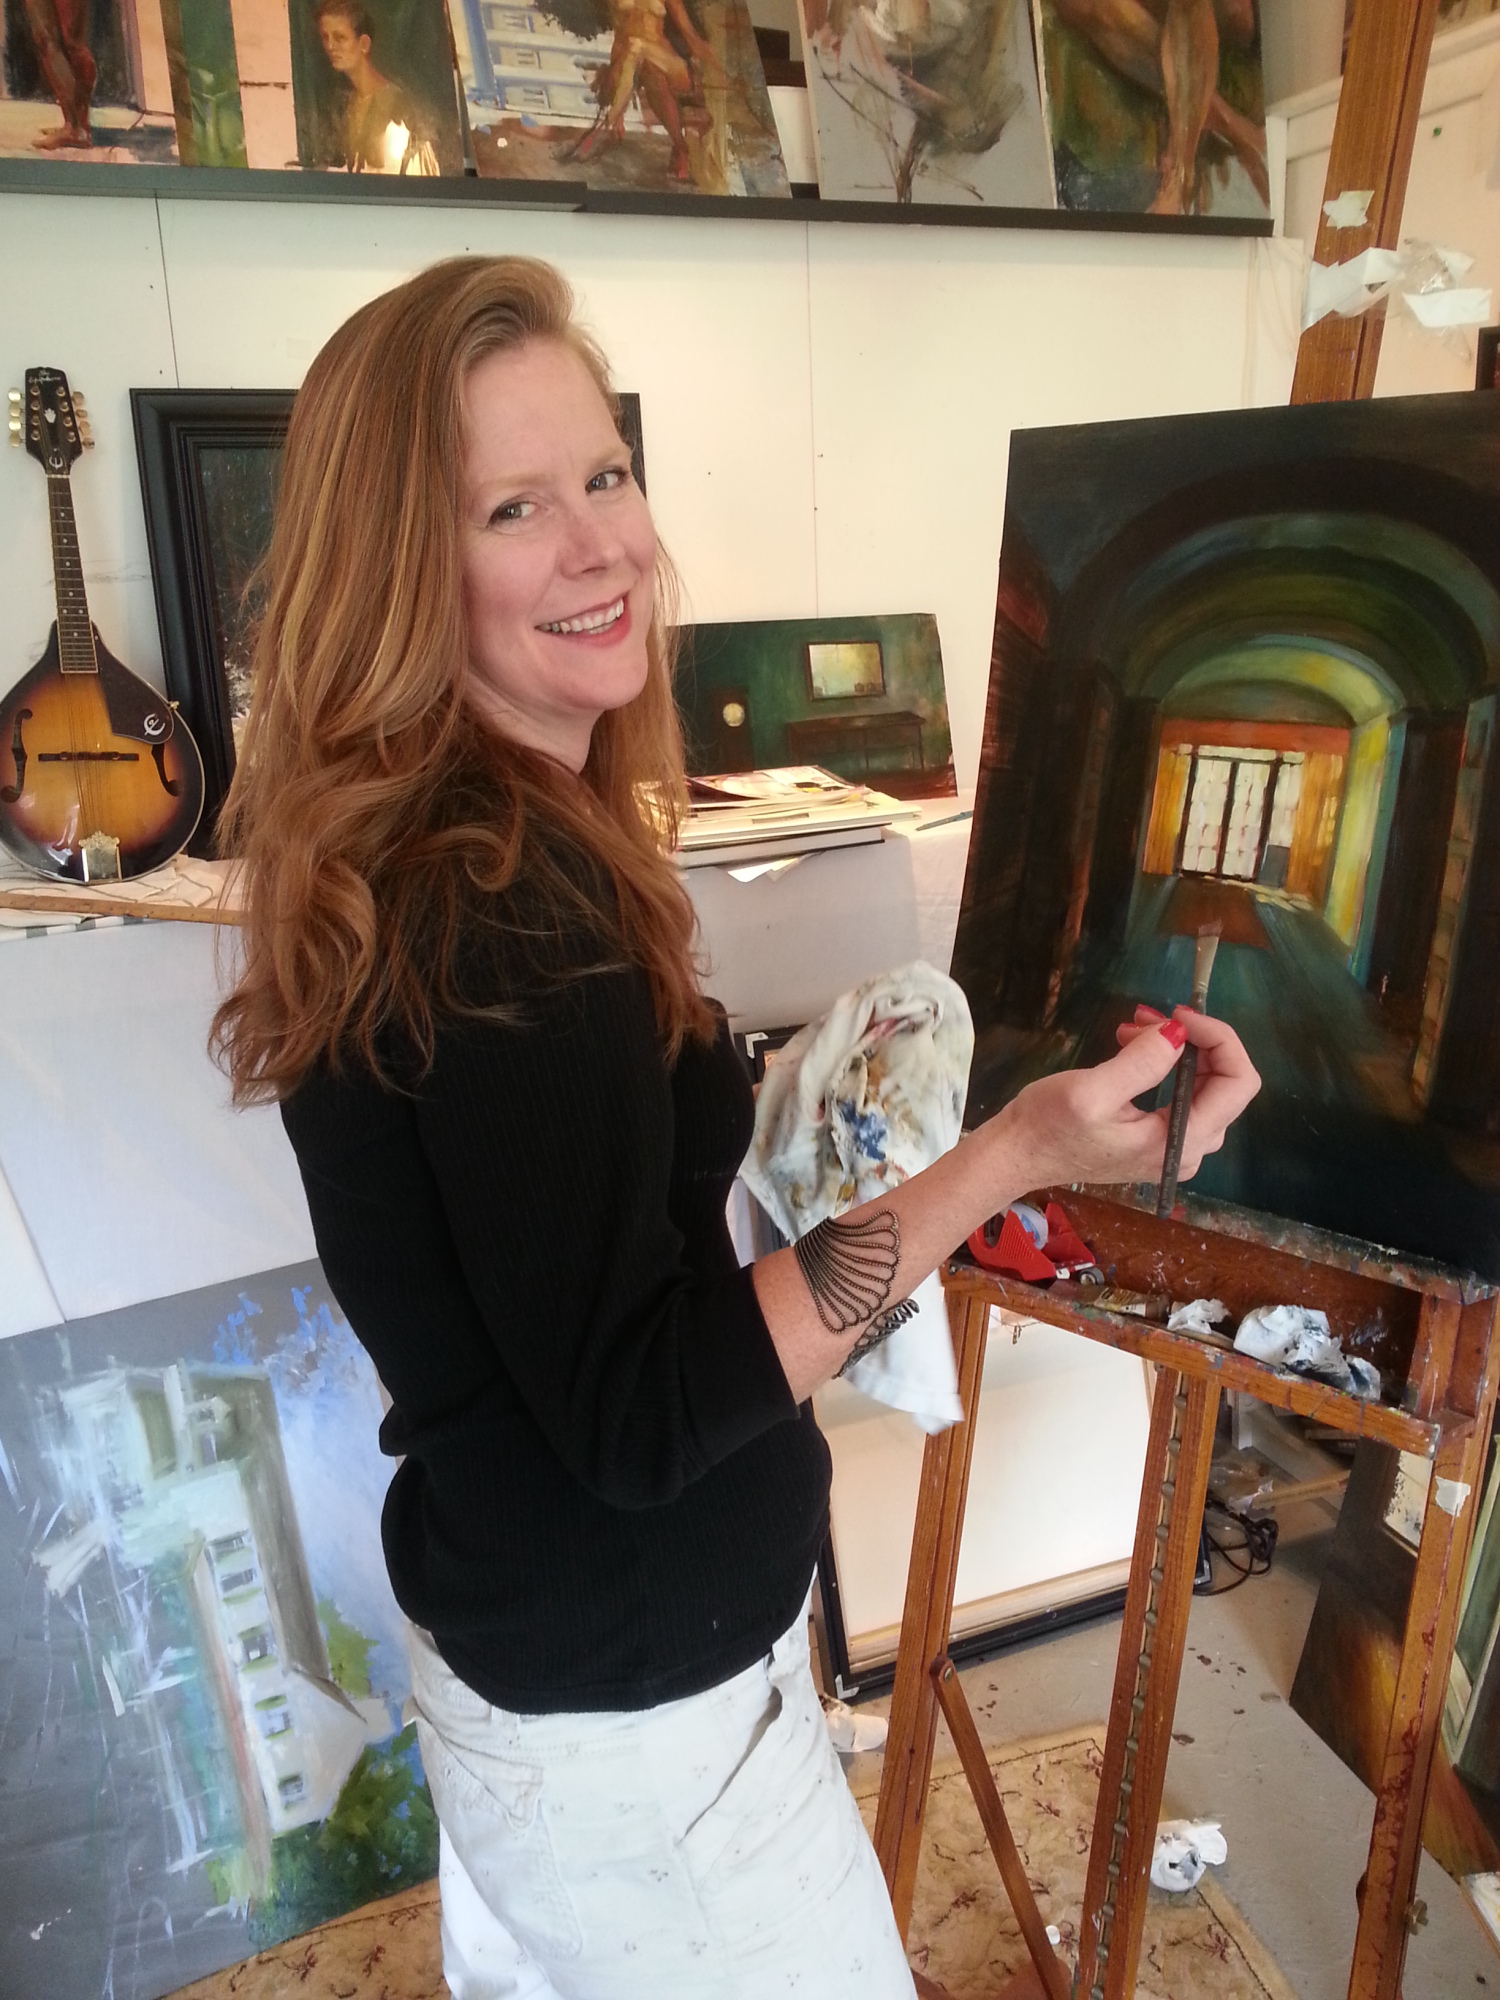 5 Employee Relations Lessons I Learned at a Painting Class